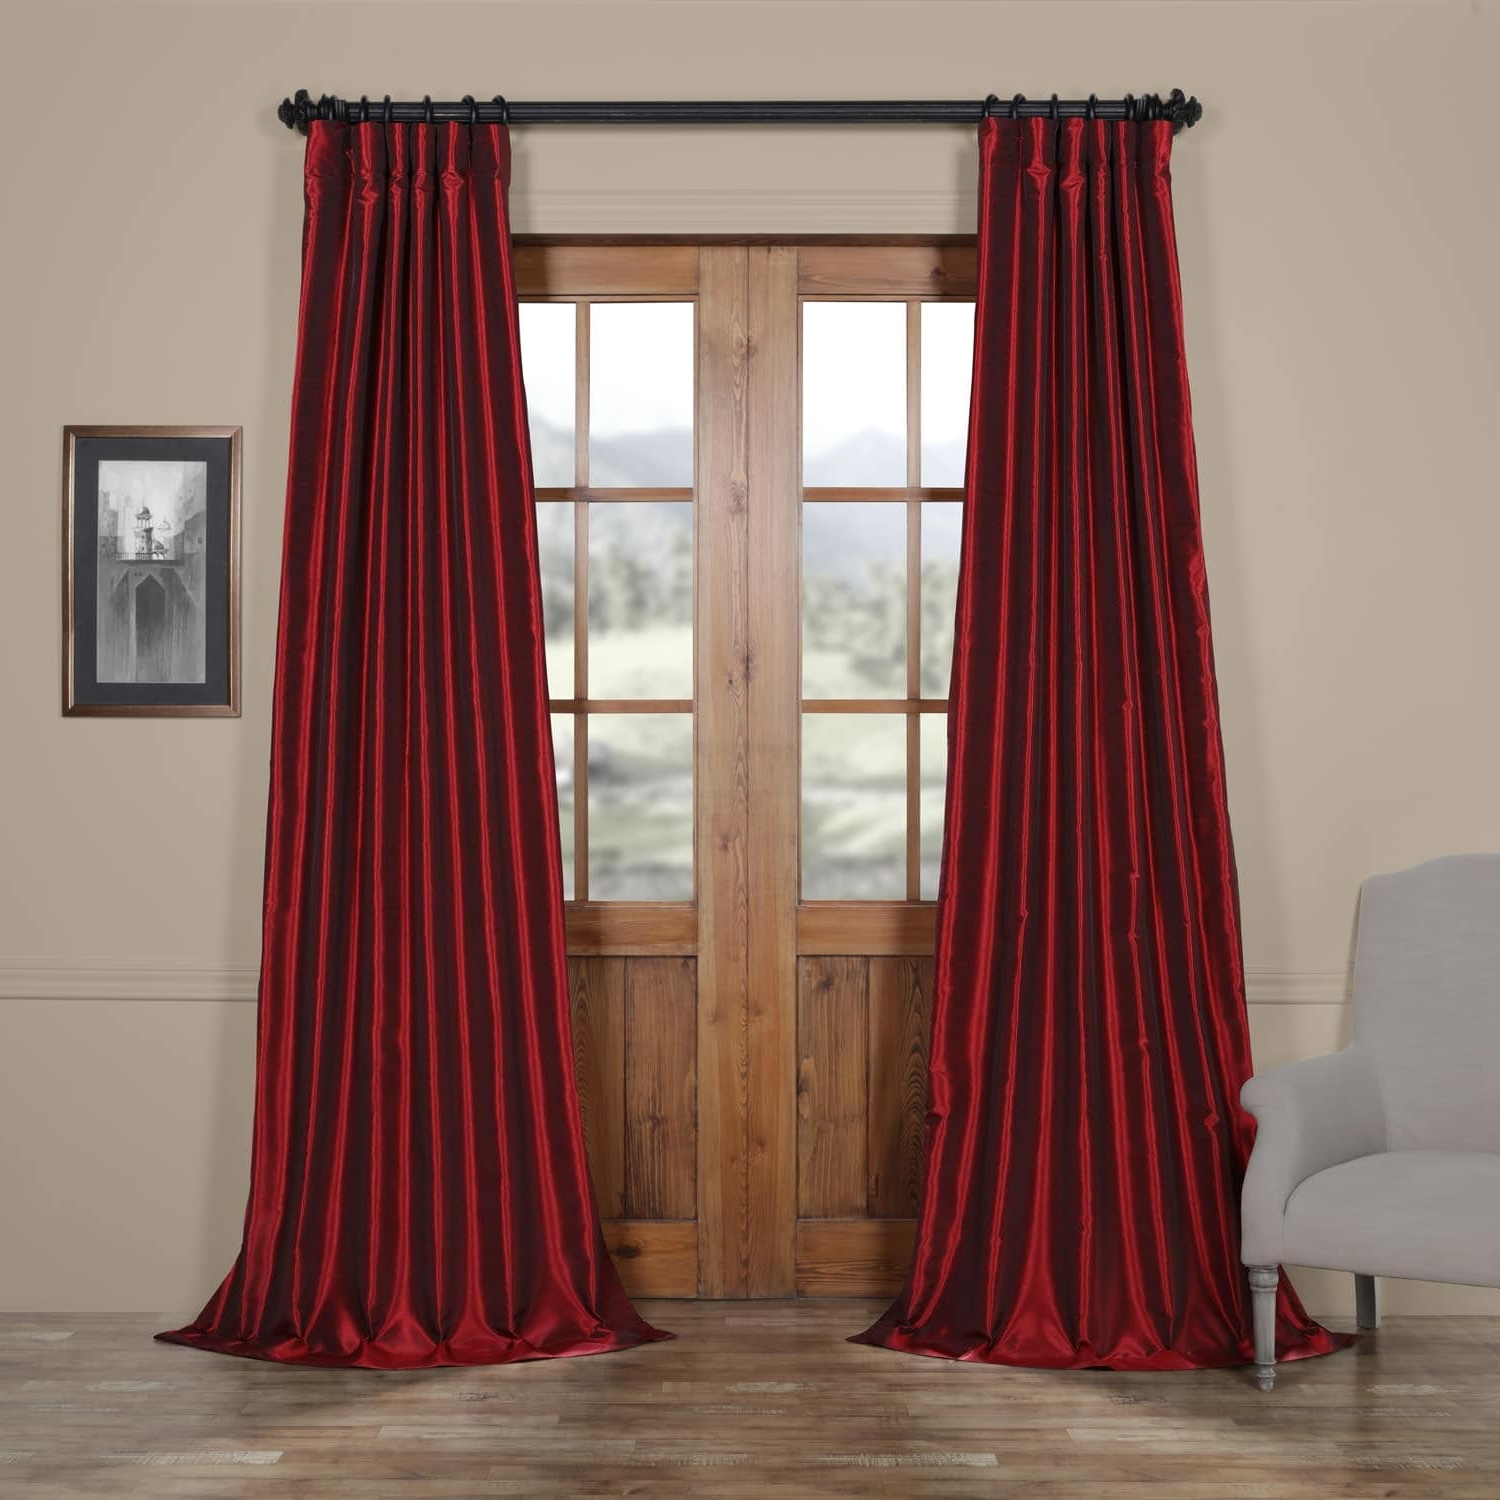 Well Known Exclusive Fabrics True Blackout Vintage Textured Faux Dupioni Silk Curtain Panel Intended For True Blackout Vintage Textured Faux Silk Curtain Panels (View 5 of 20)